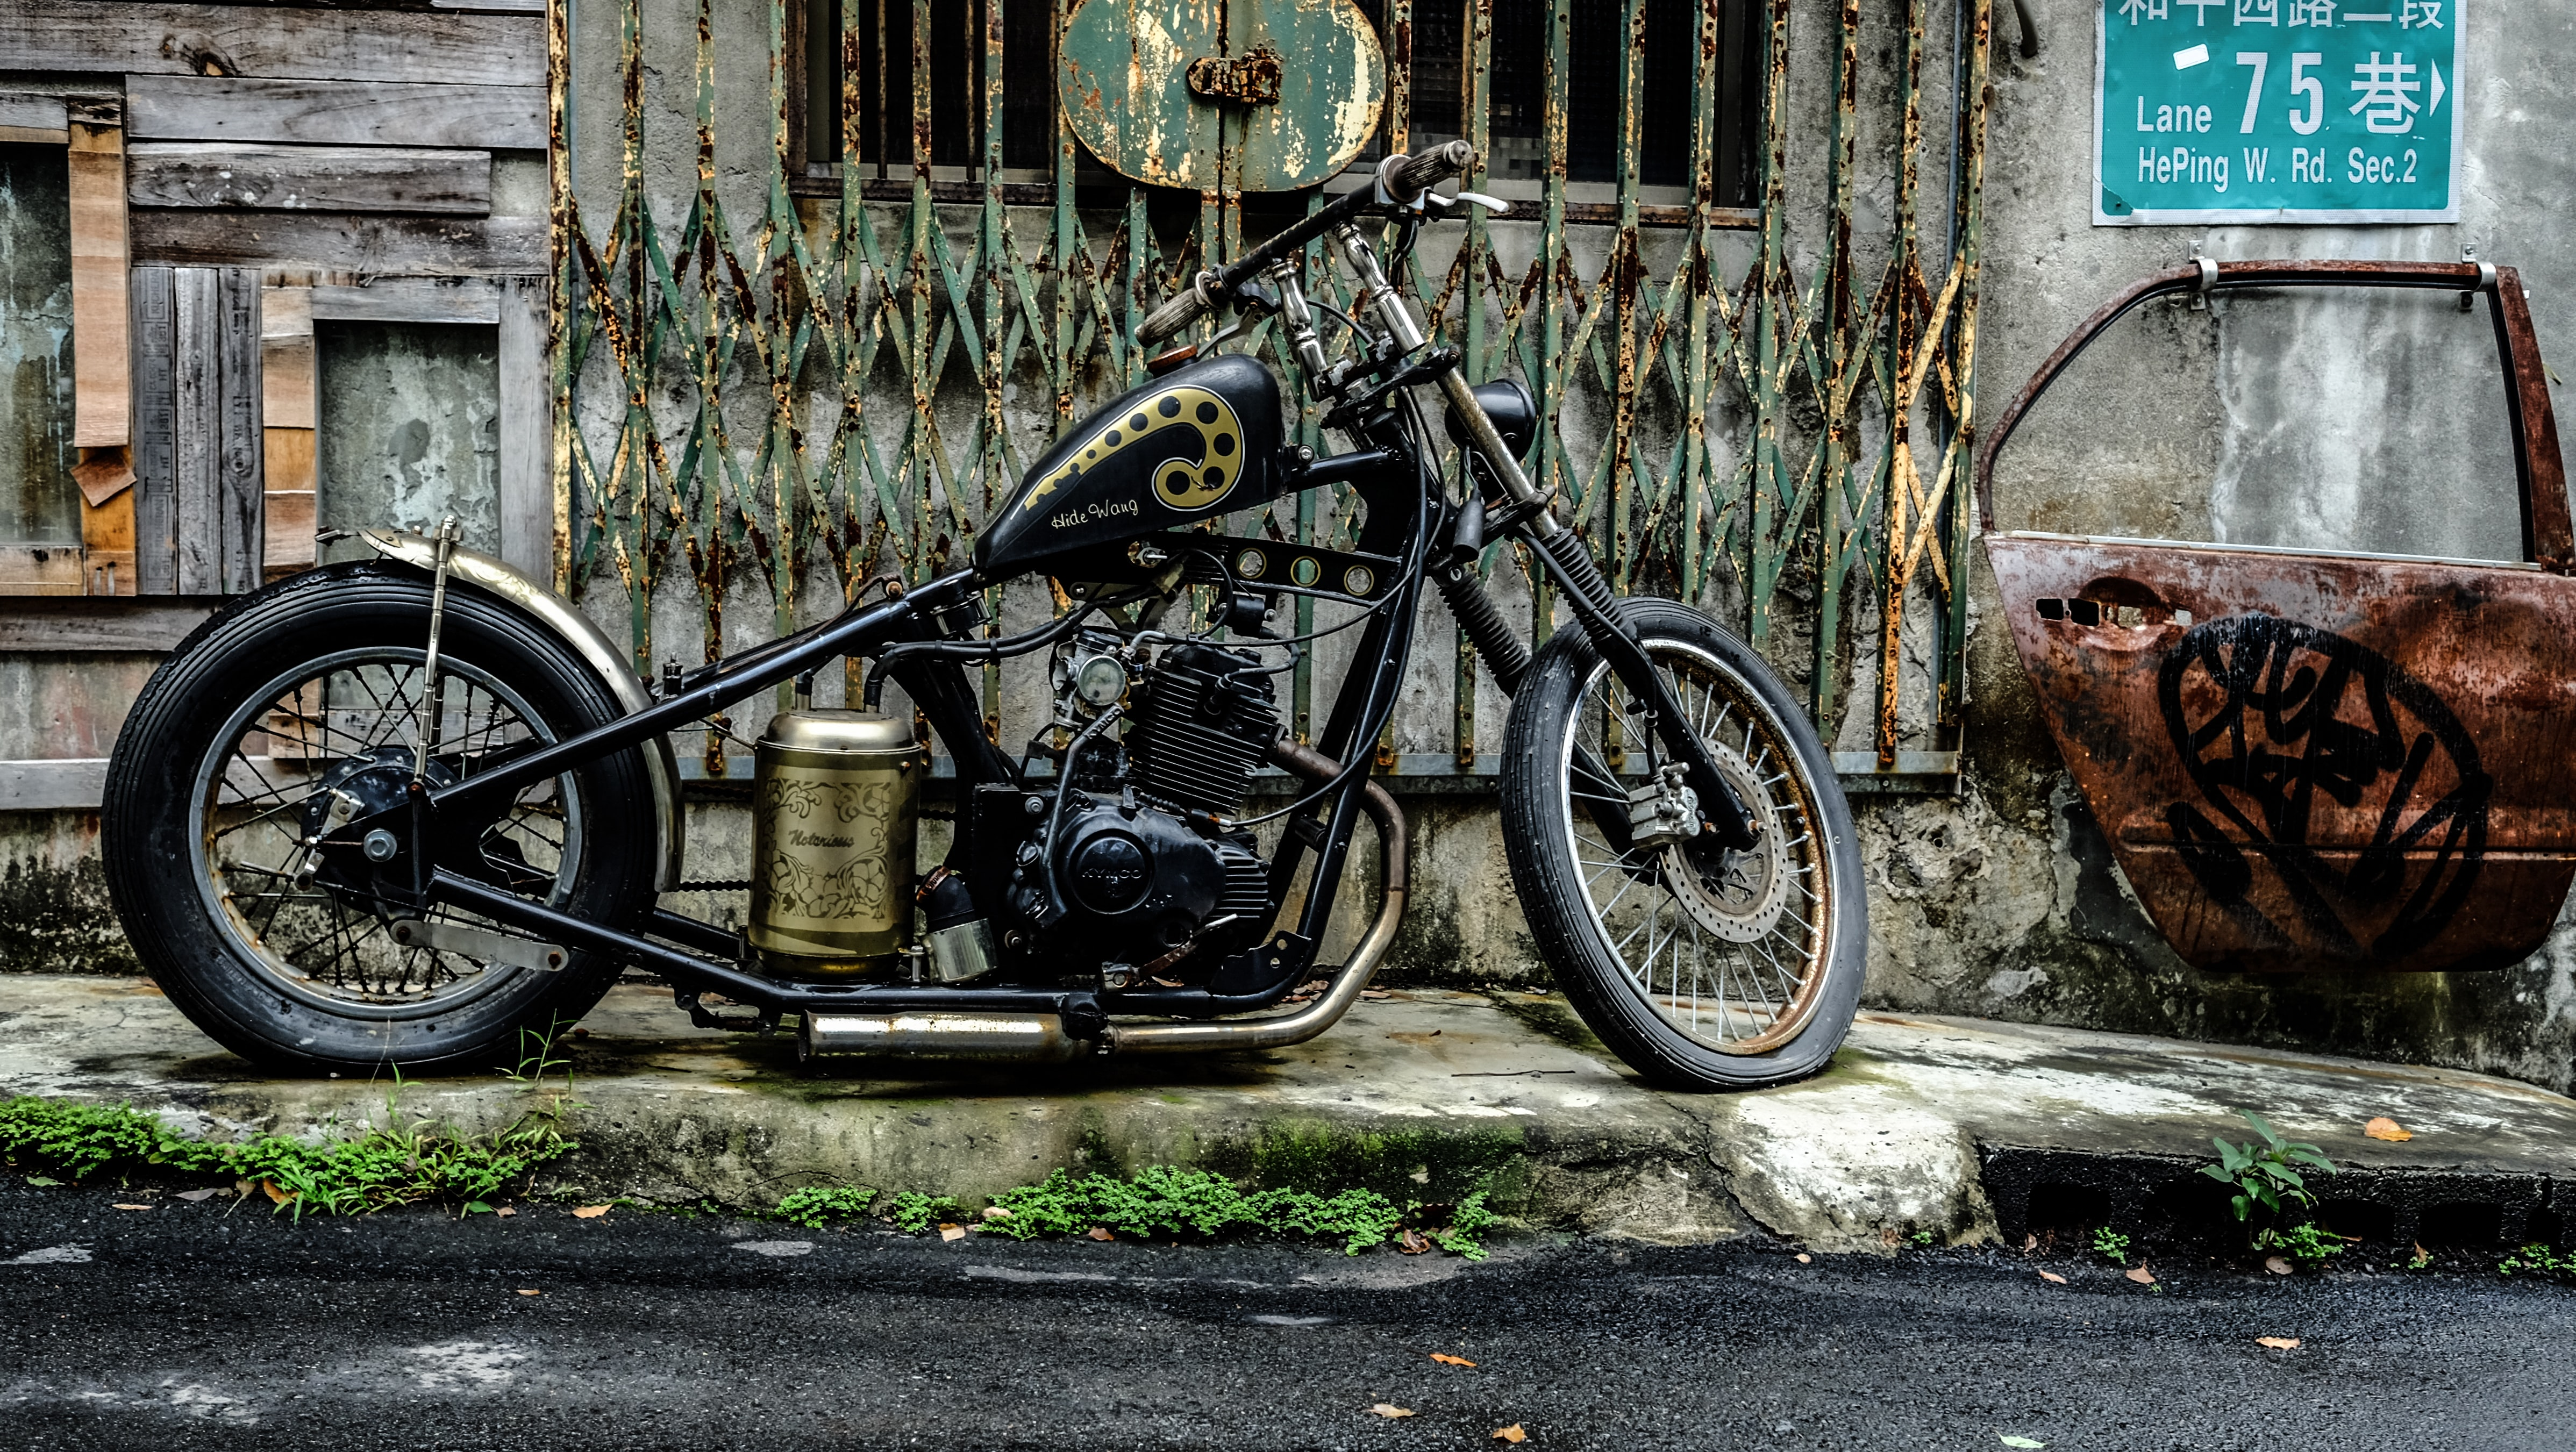 black chopper motorcycle